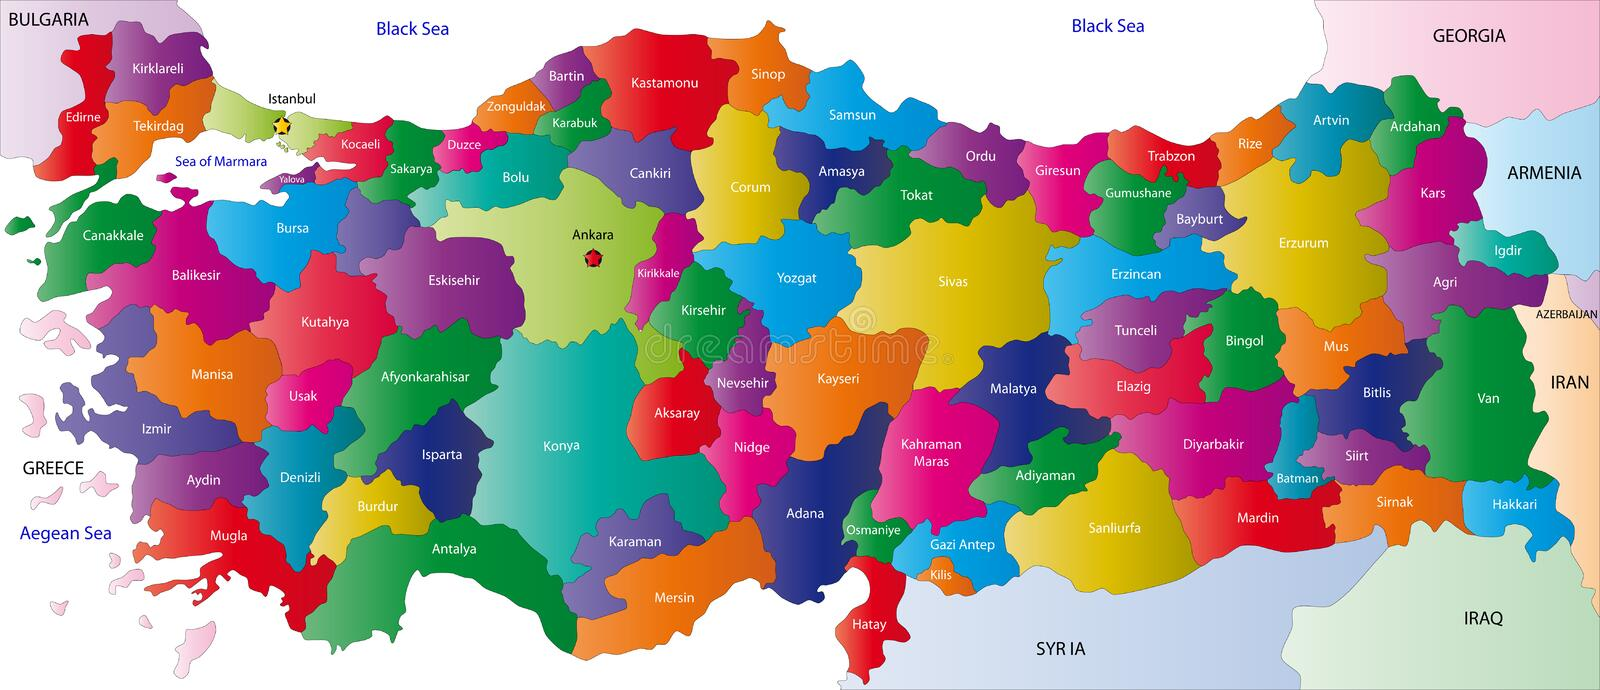 Map of Turkey. Turkey map designed in illustration with the regions colored in bright colors and with the main cities. On an illustration neighbouring countries